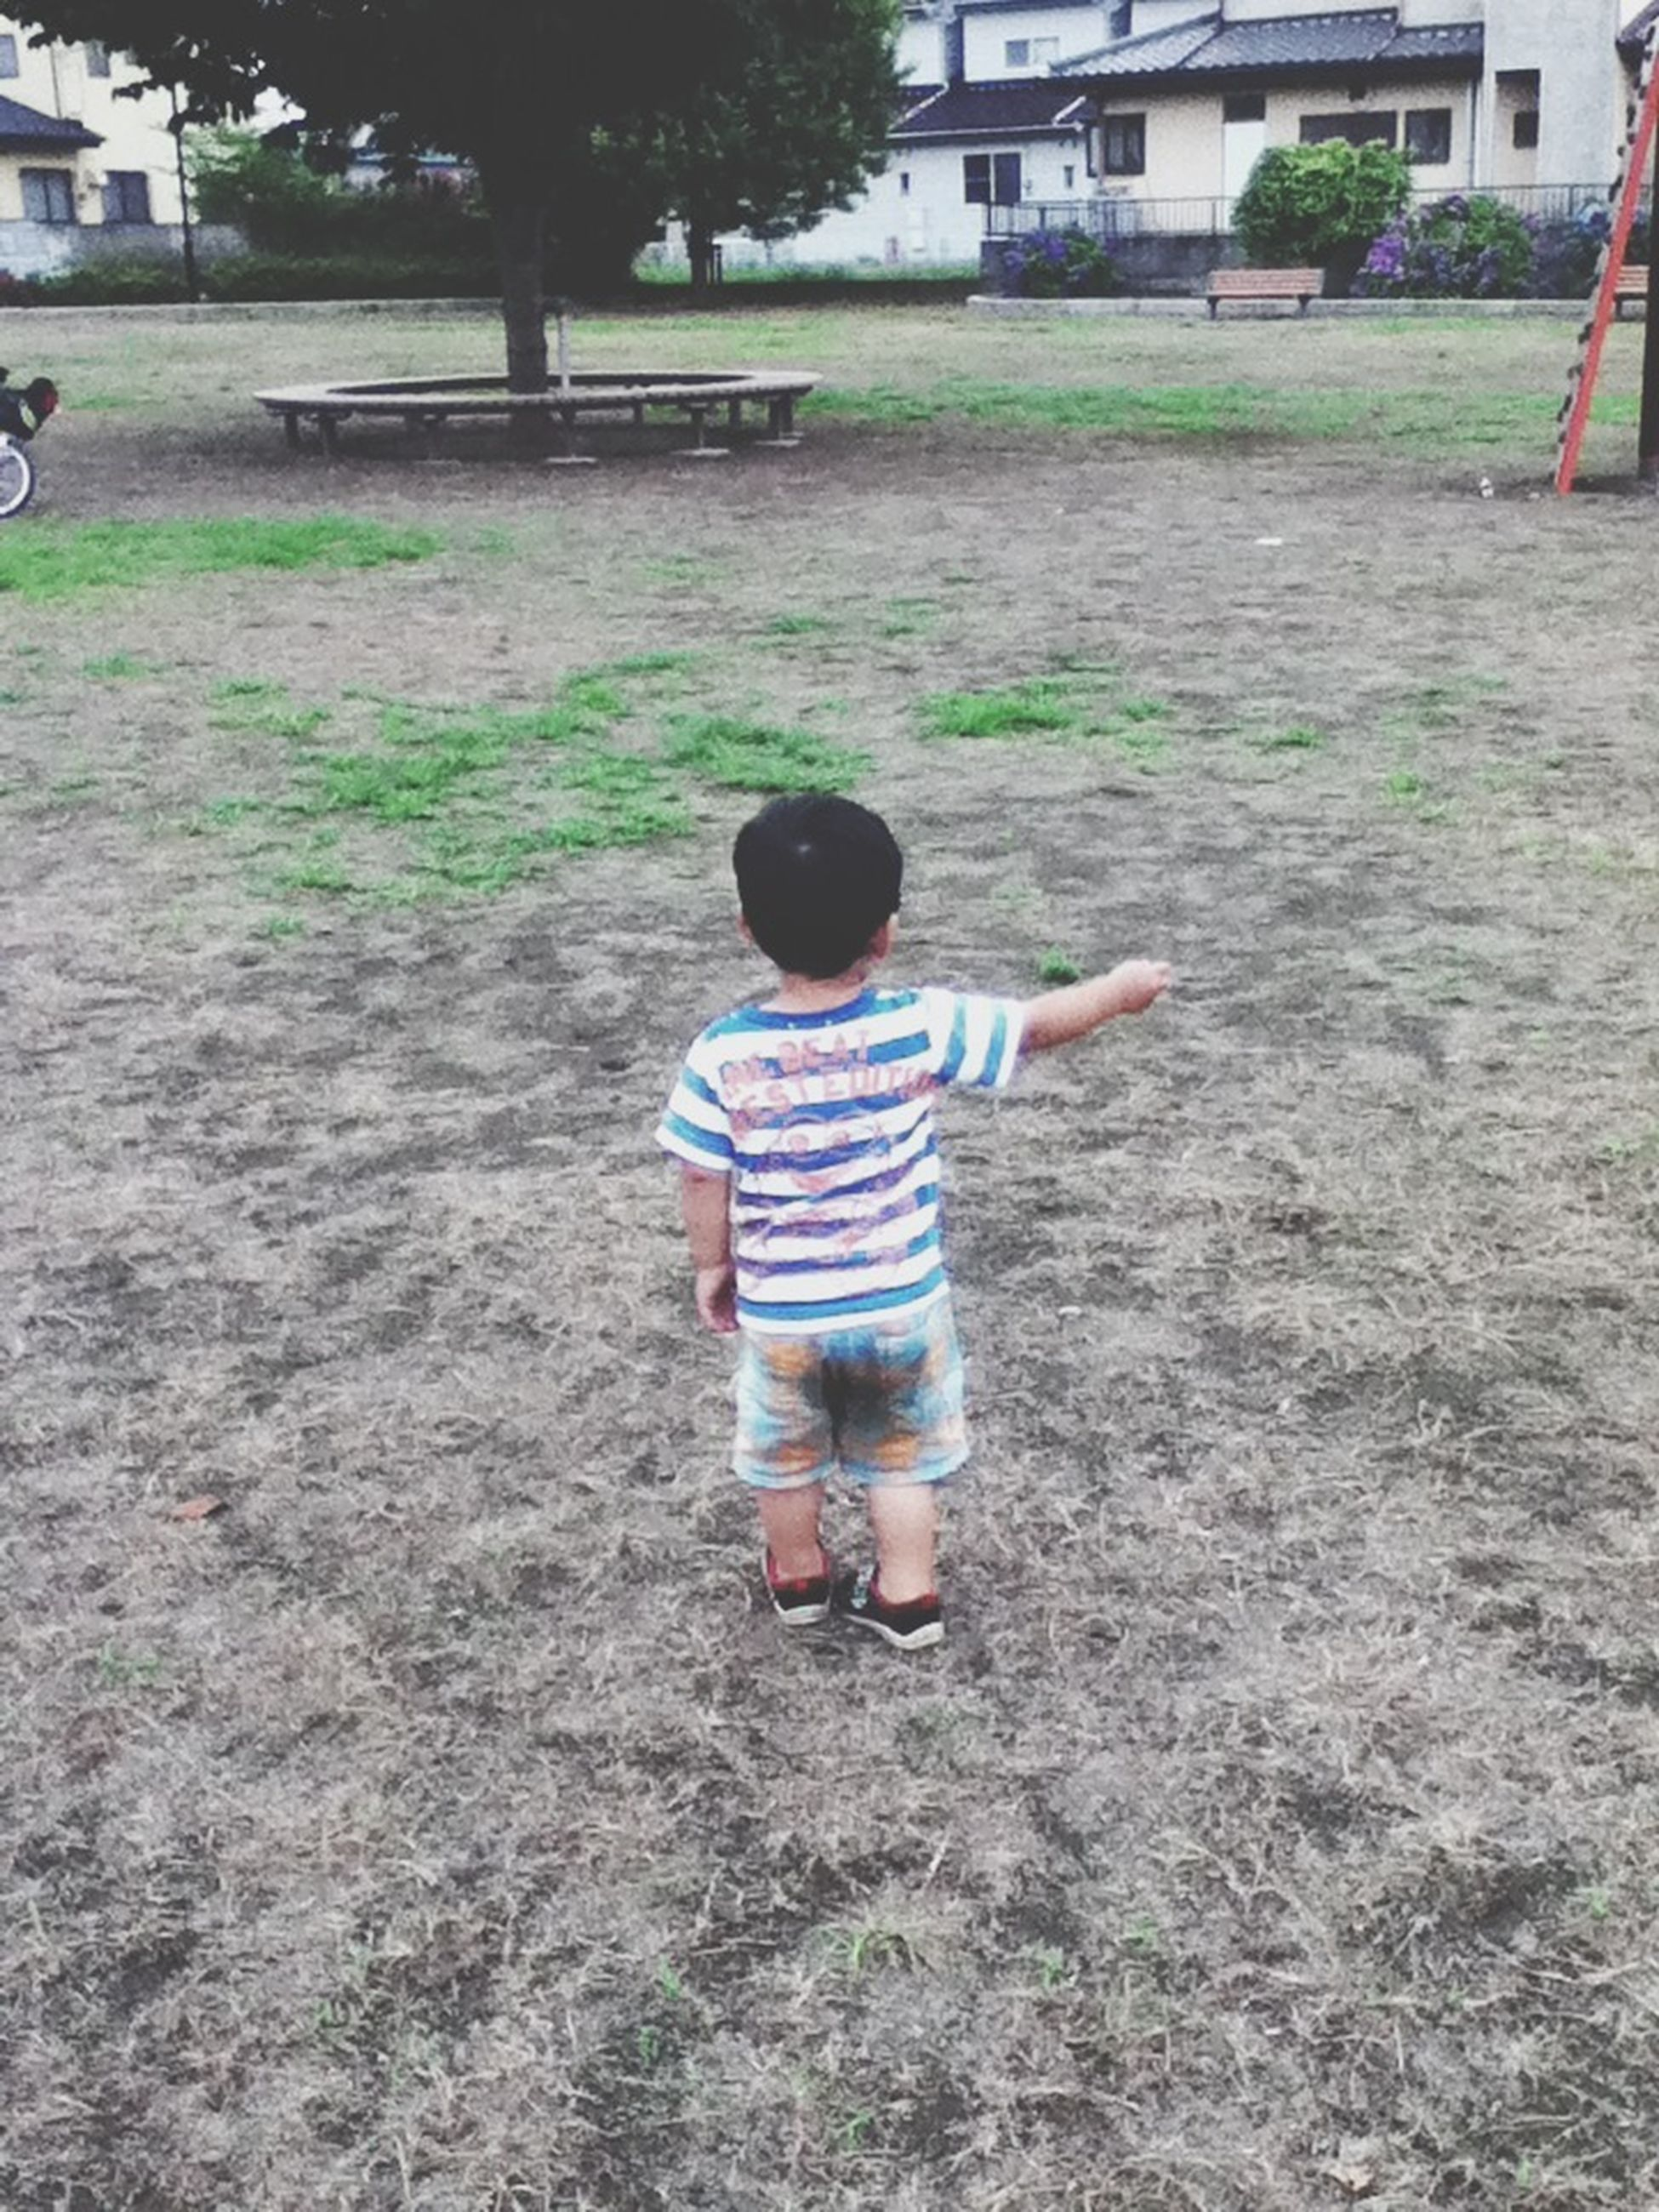 childhood, full length, elementary age, boys, girls, lifestyles, innocence, casual clothing, leisure activity, grass, person, cute, park - man made space, playful, rear view, playing, street, day